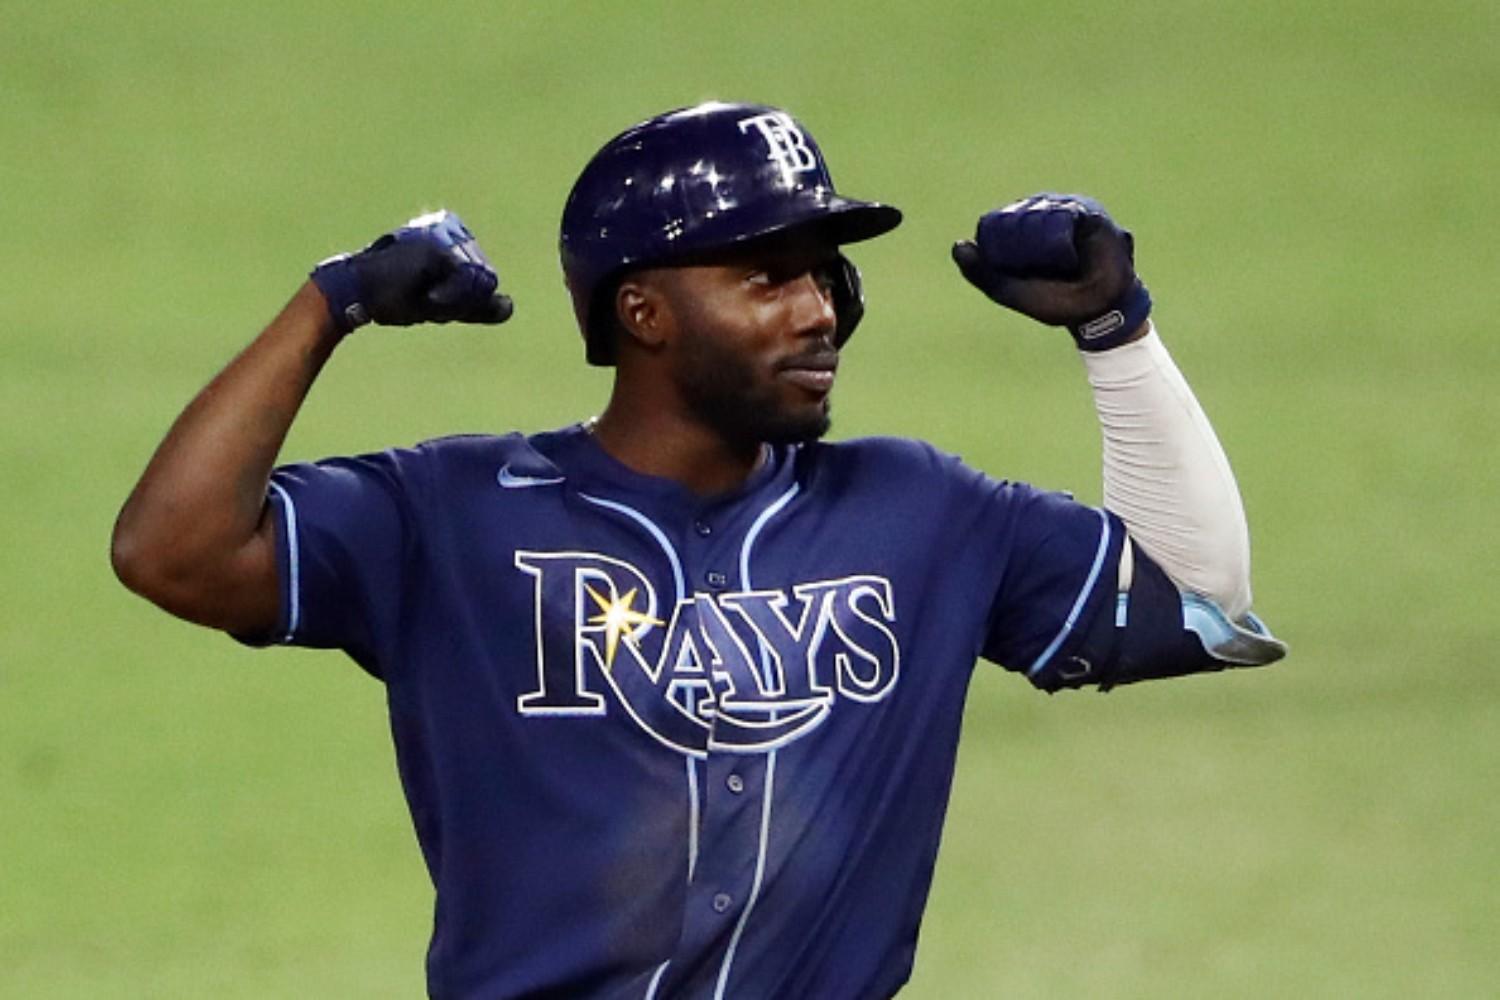 Randy Arozarena is making history for the Tampa Bay Rays